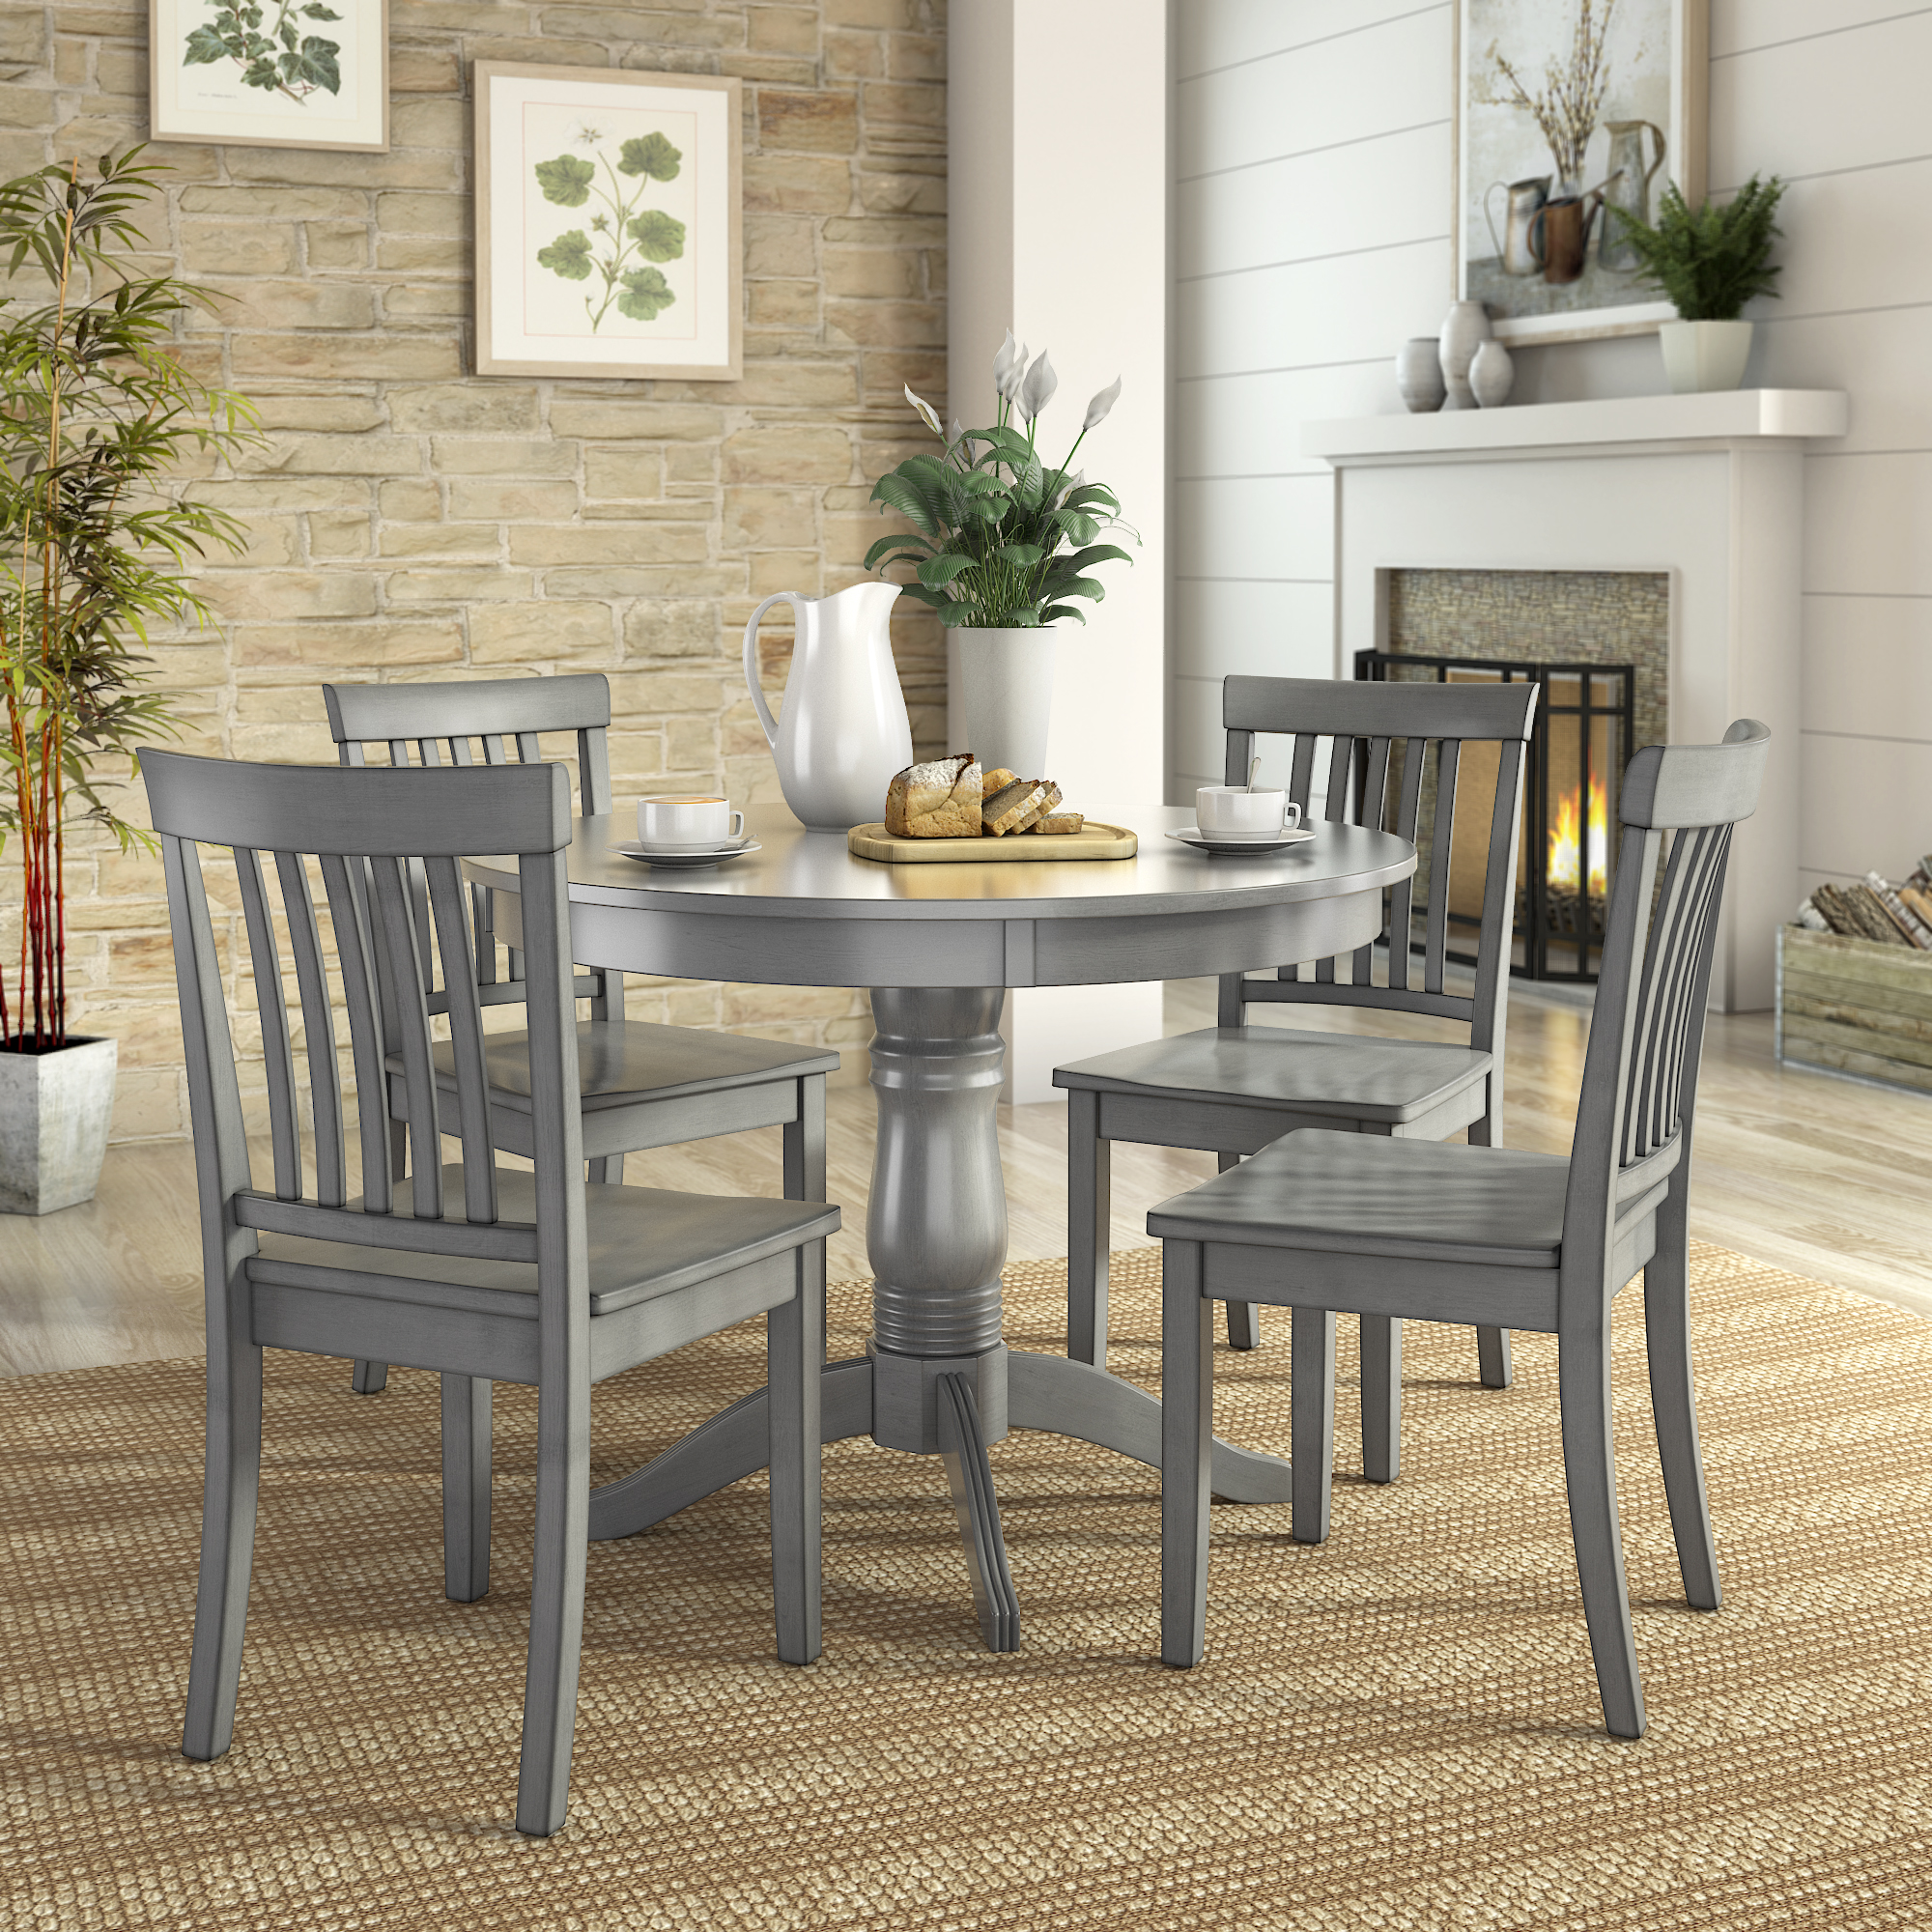 Lexington 5 Piece Dining Set With Round Table And 4 Mission Back Chairs